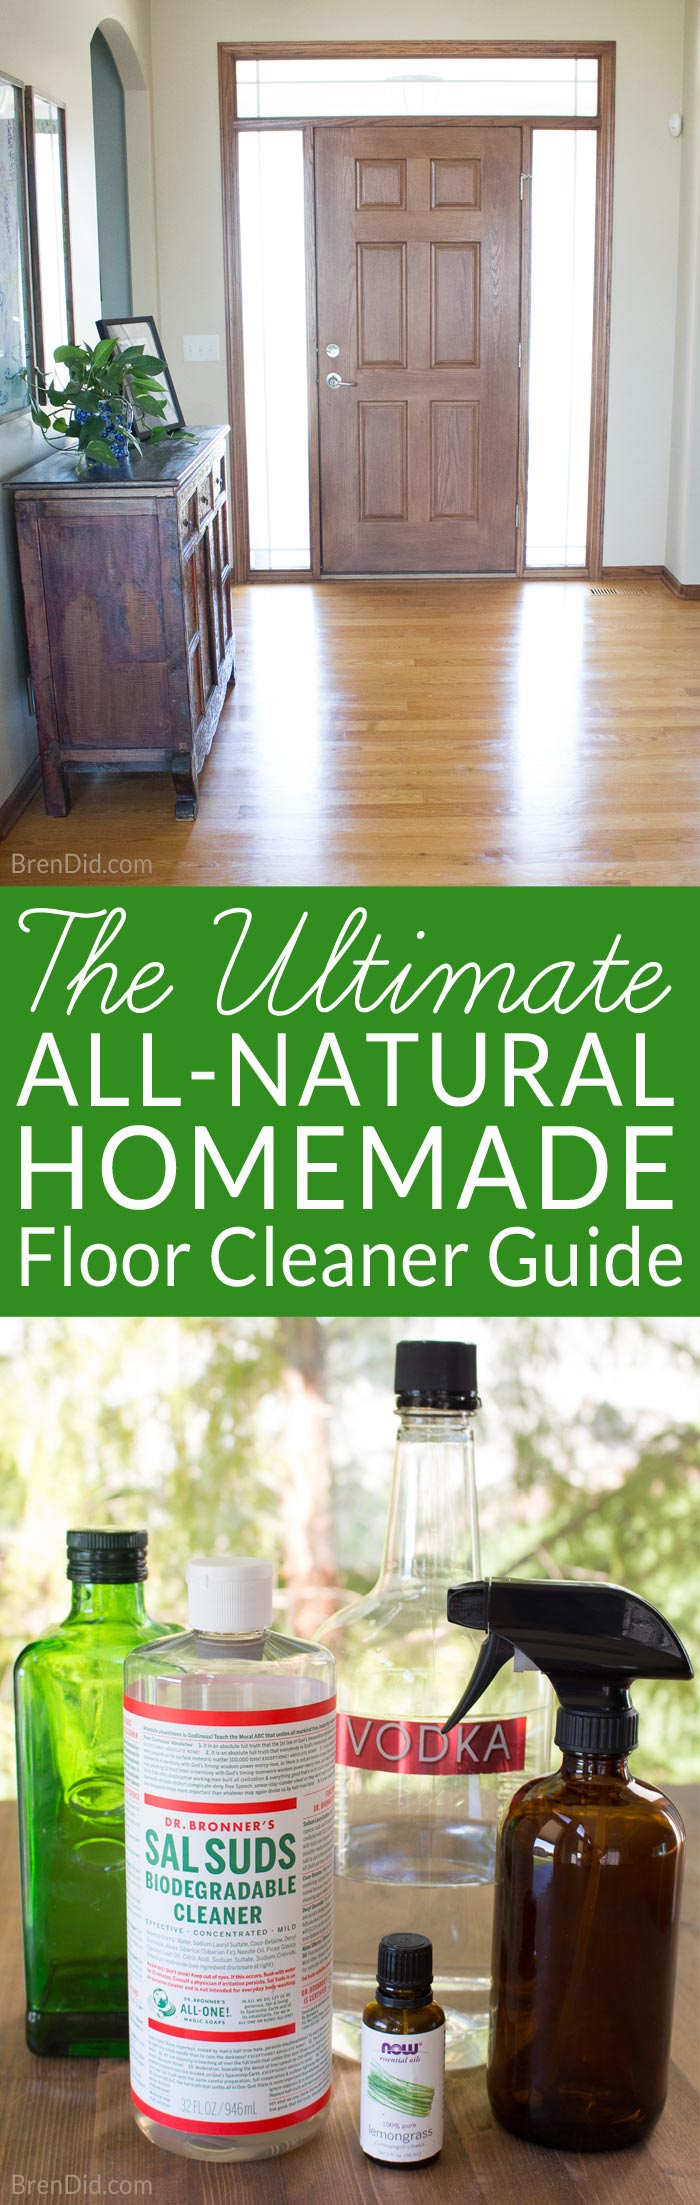 Cleaning floors can be a chore. Keep your hard surfaces in tip top shape with